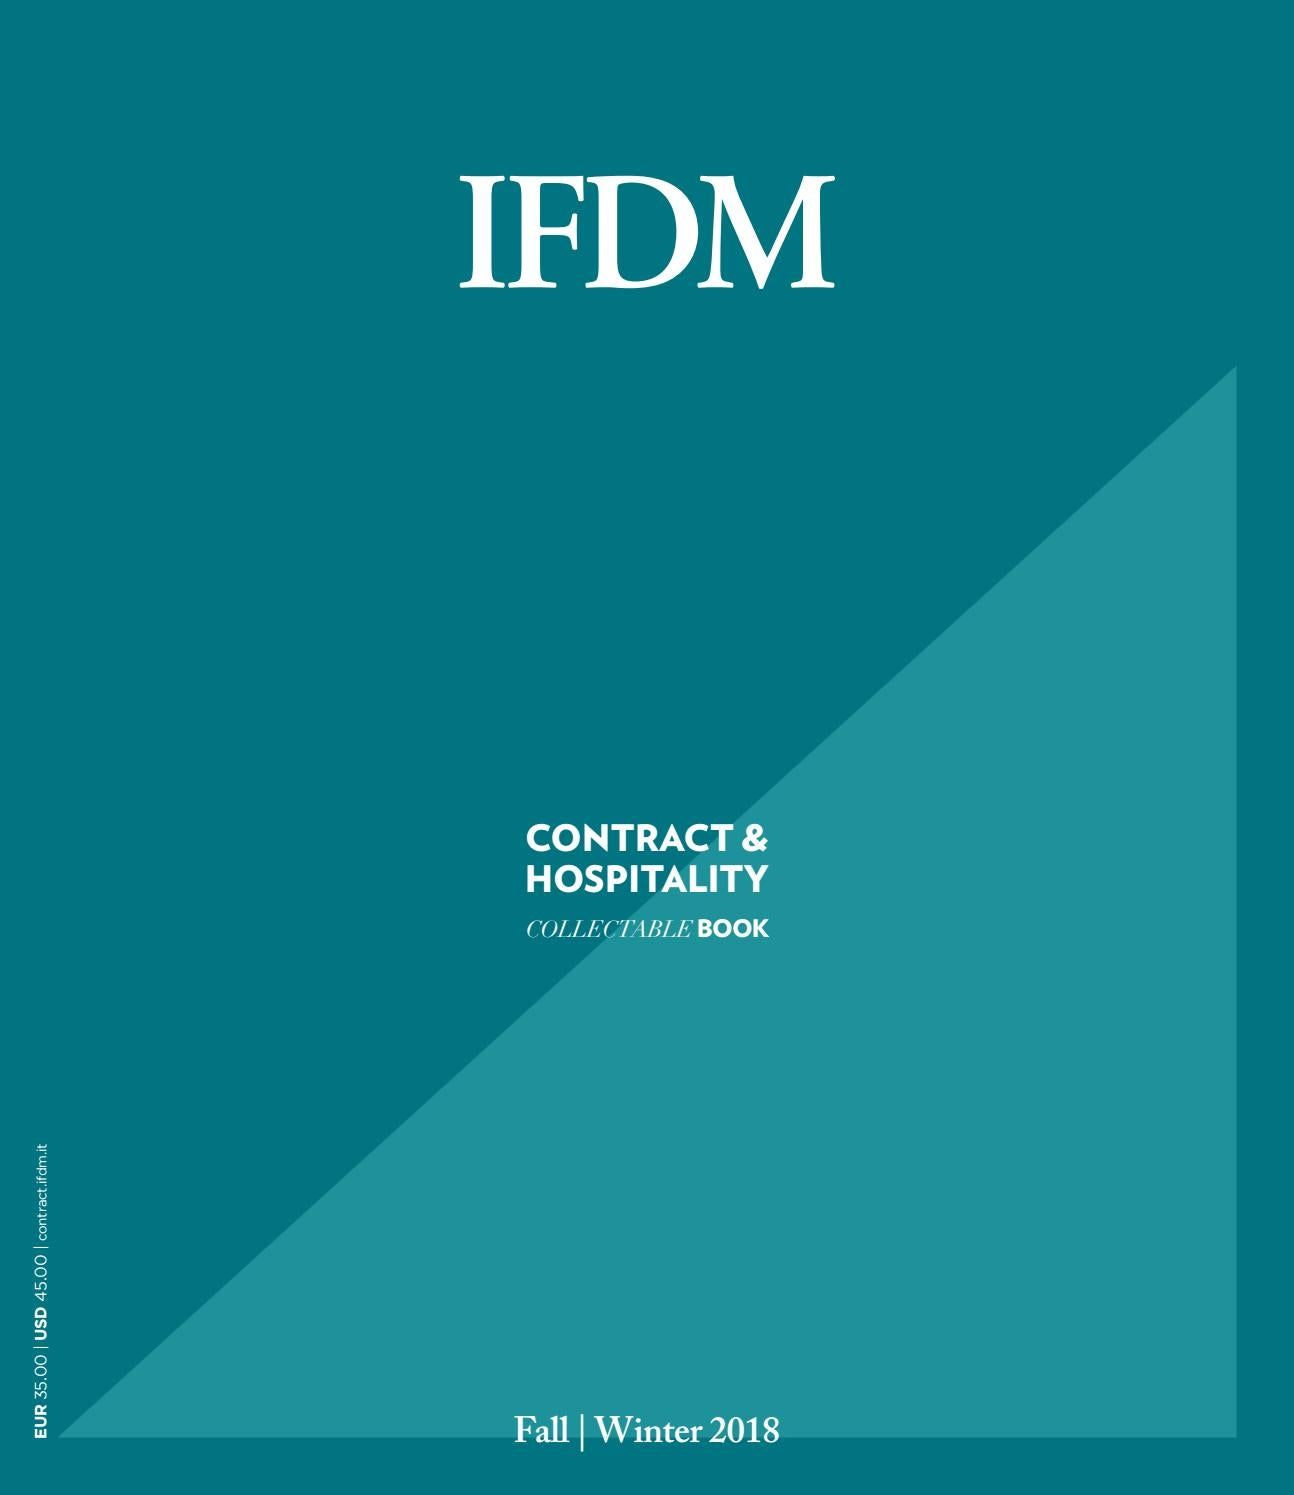 Ifdm Contract Hospitality Book International Fall Winter 2018 By Ifdm Issuu